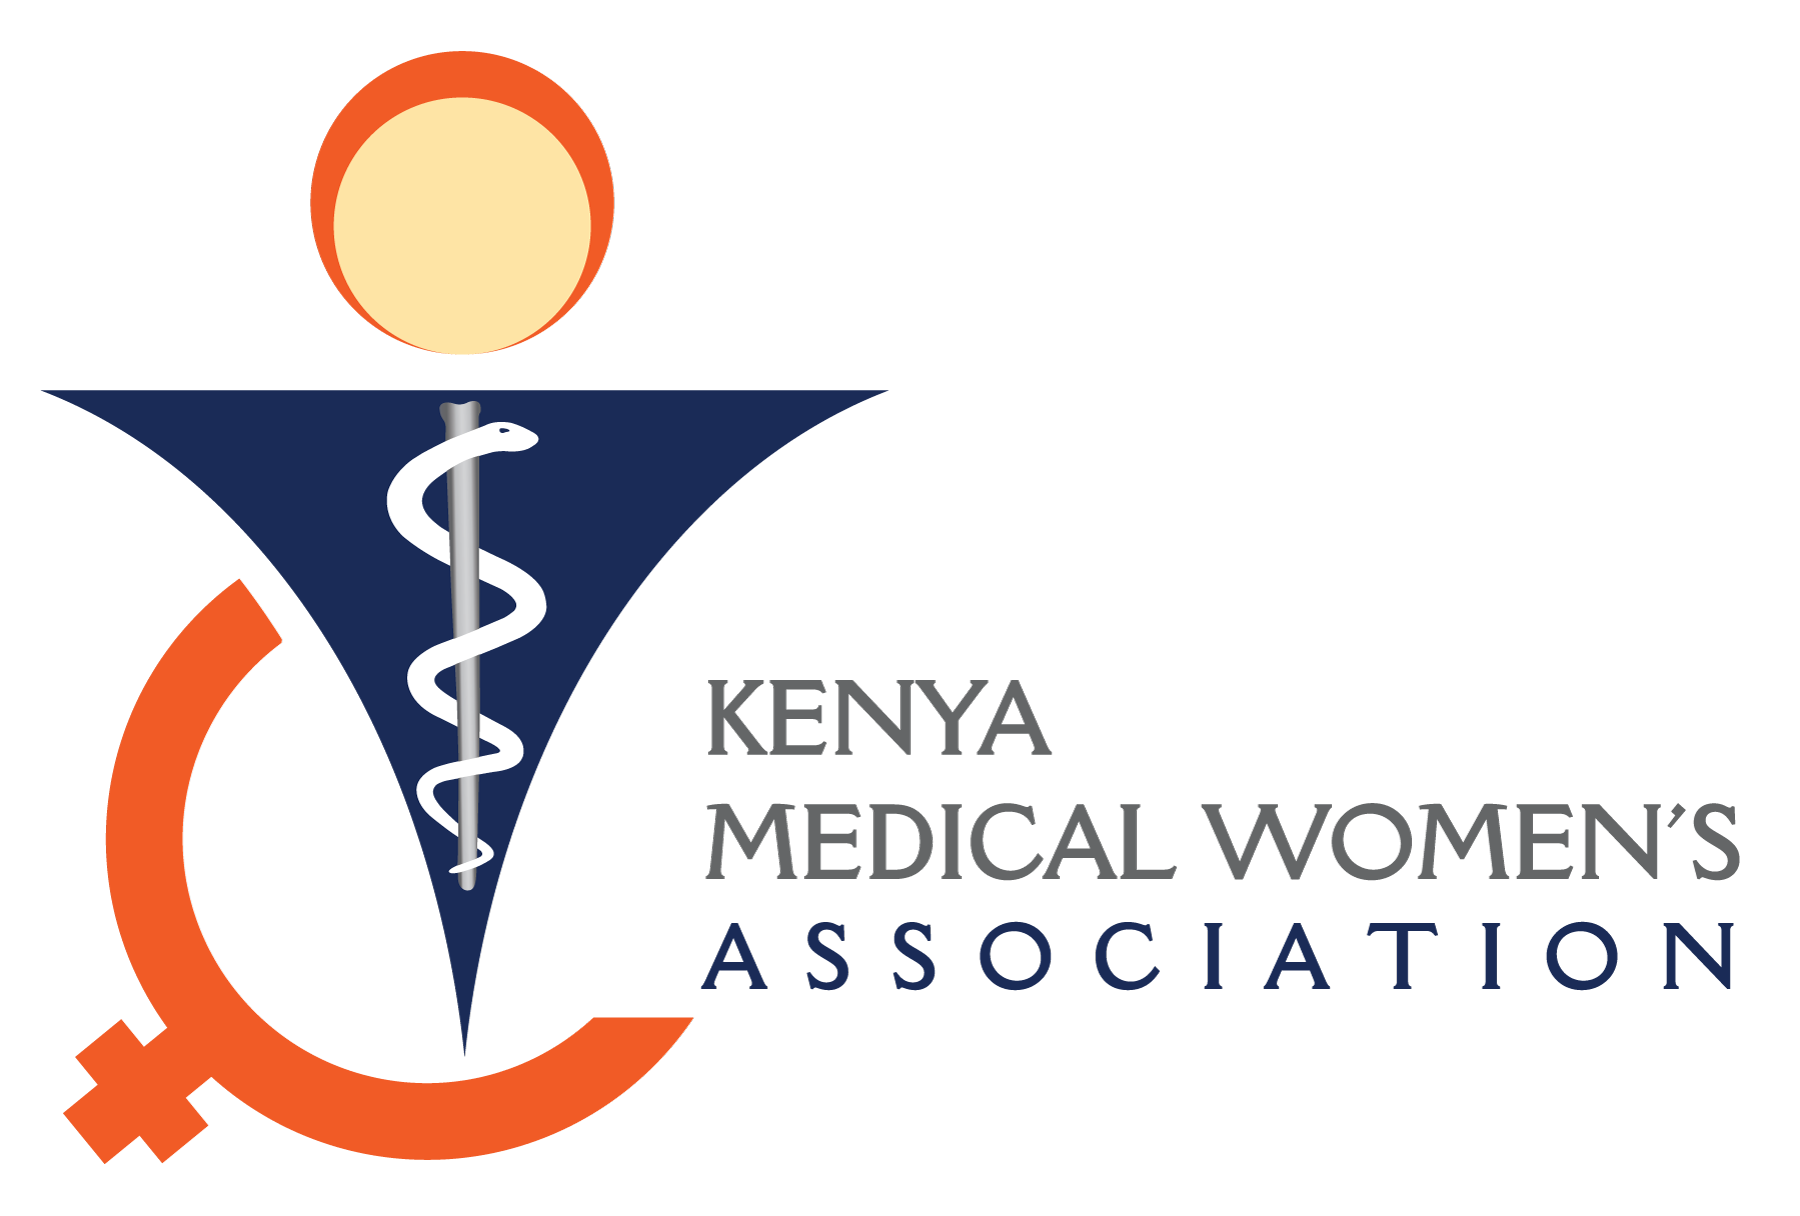 Kenya Medical Women's Association